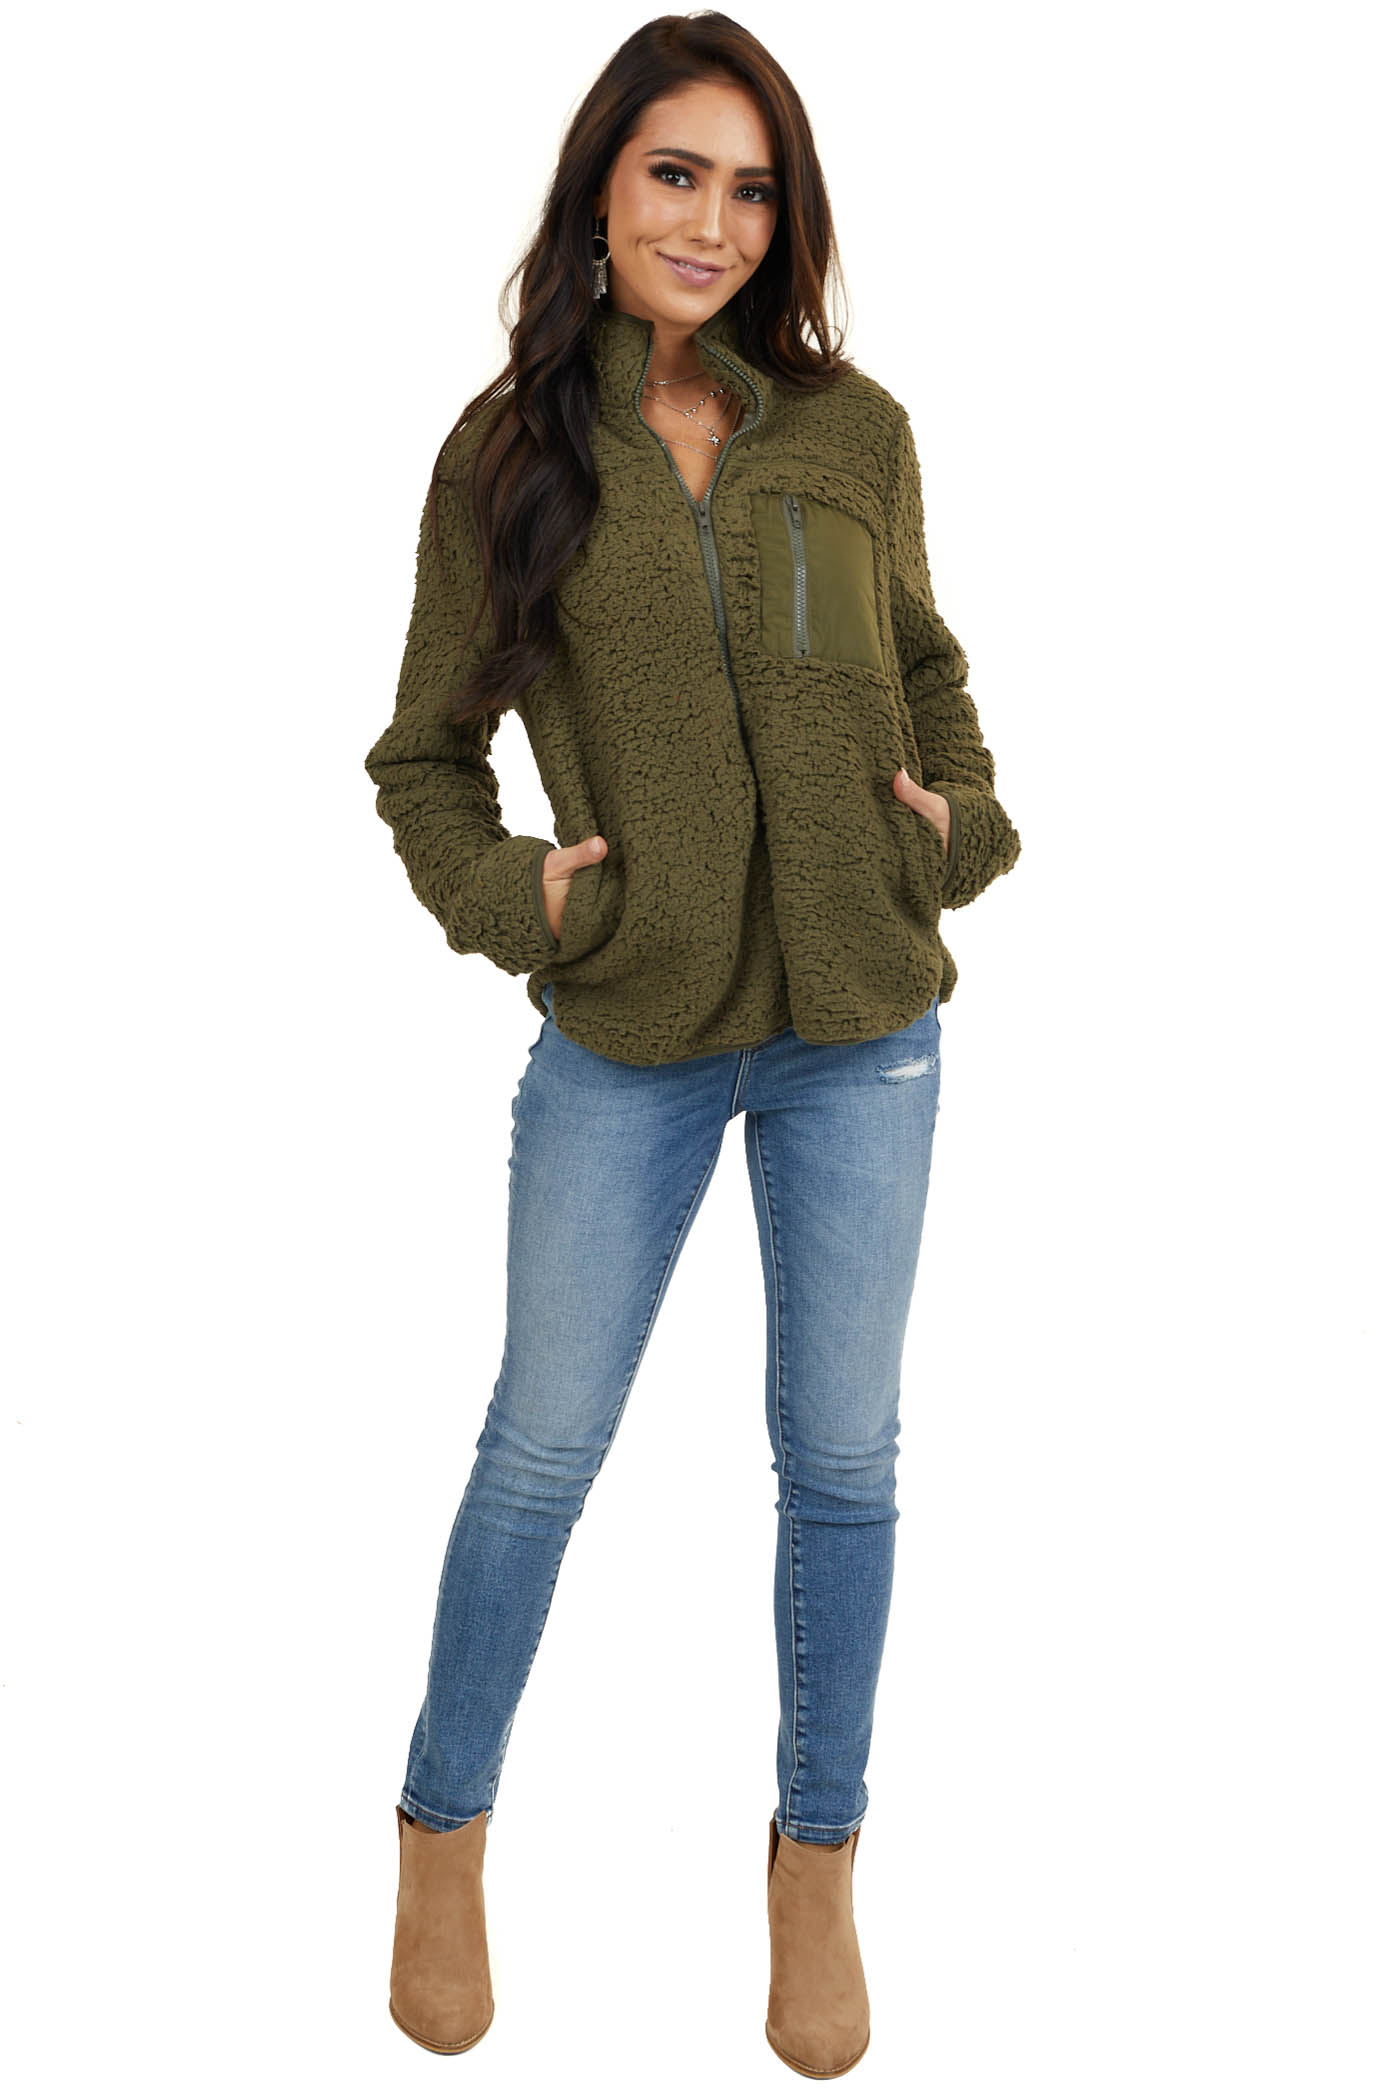 Dusty Forest Green Sherpa Jacket with Chest and Side Pockets